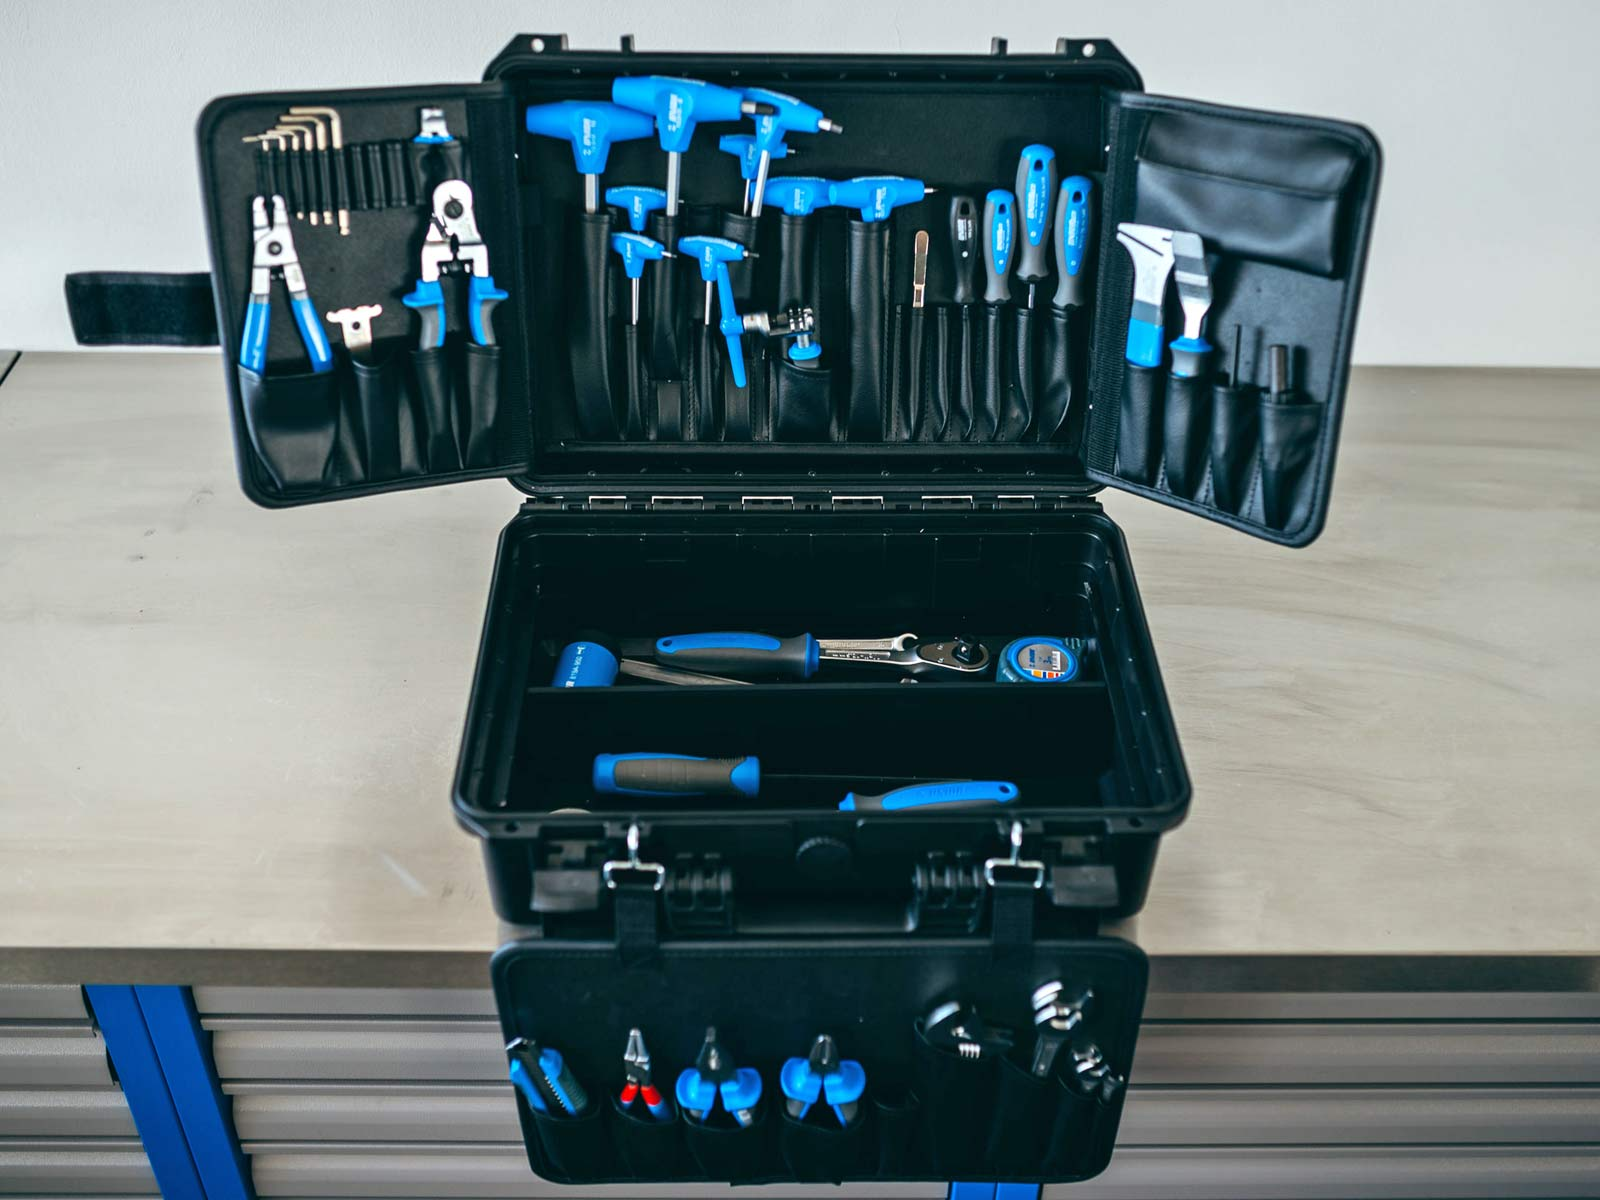 eb17 unior tool spins up unique hub genie pro kit travel case 2 for 1 disc tool much more. Black Bedroom Furniture Sets. Home Design Ideas